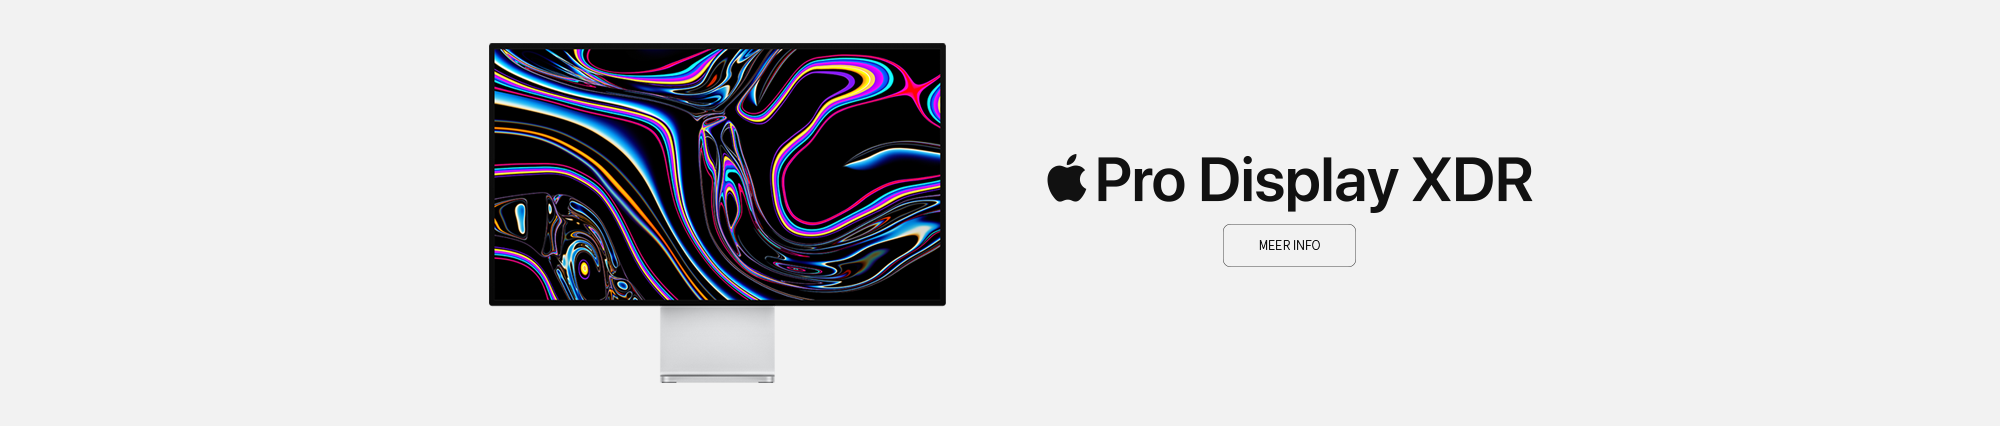 https://dpyxfisjd0mft.cloudfront.net/lab9-2/B2B/Producten%20-%20Grafics/Apple/MacPro2020/Slider-ProDisplayXDR-nl.png?1576058762&w=2000&h=426